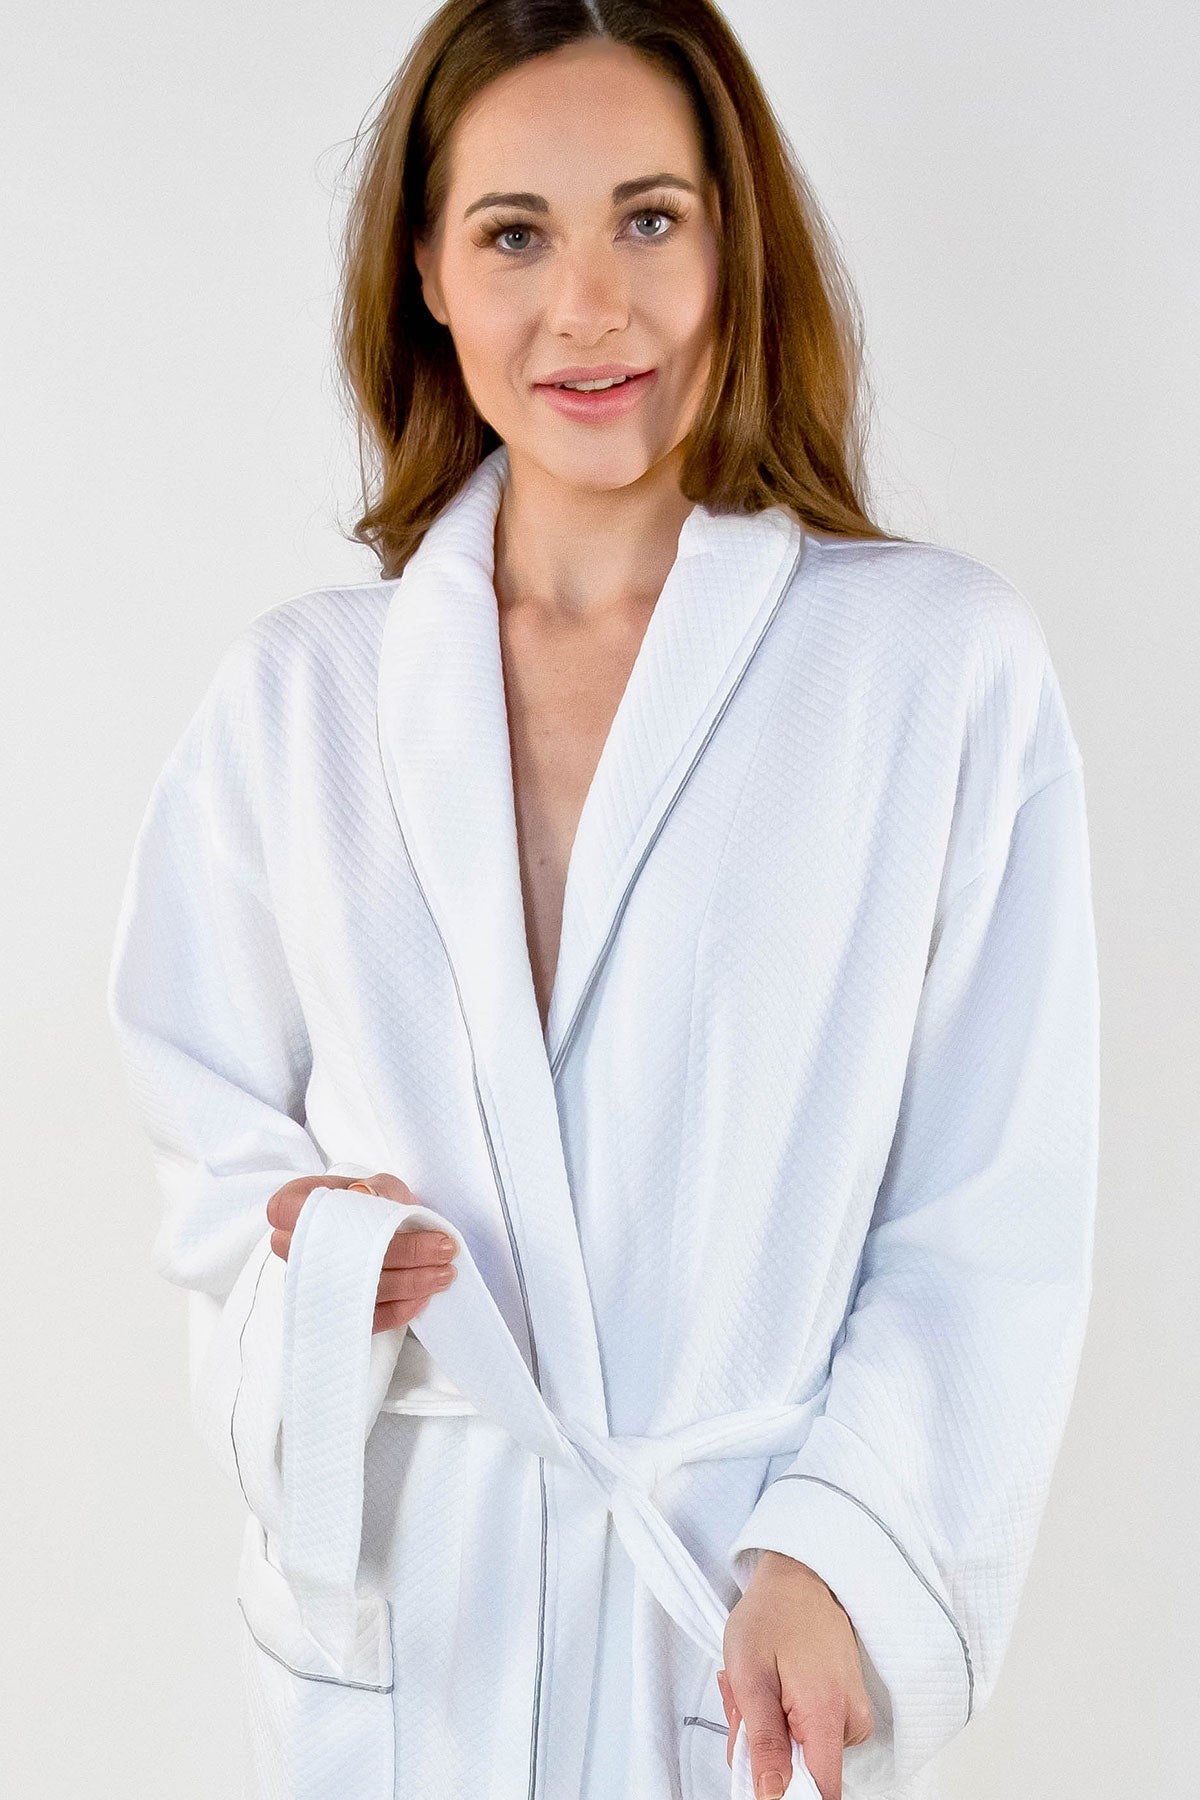 Grid Style Bath Robe White with Grey Piping